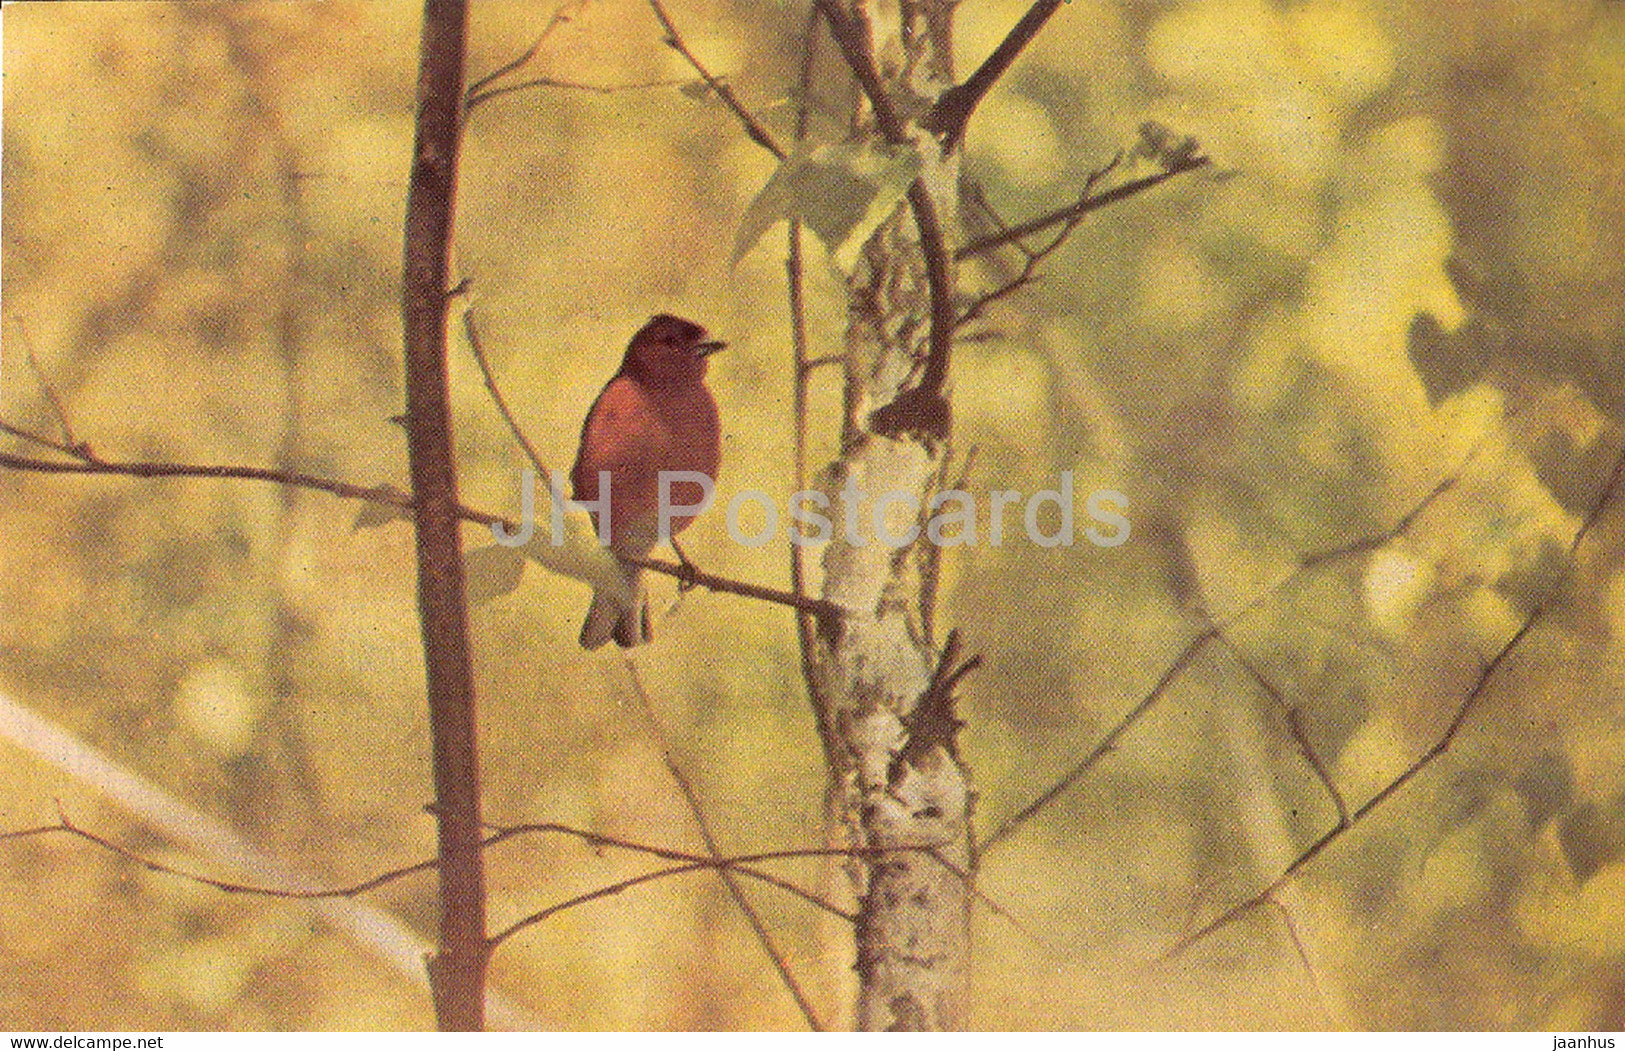 Common chaffinch - Fringilla coelebs - birds - 1968 - Russia USSR - unused - JH Postcards